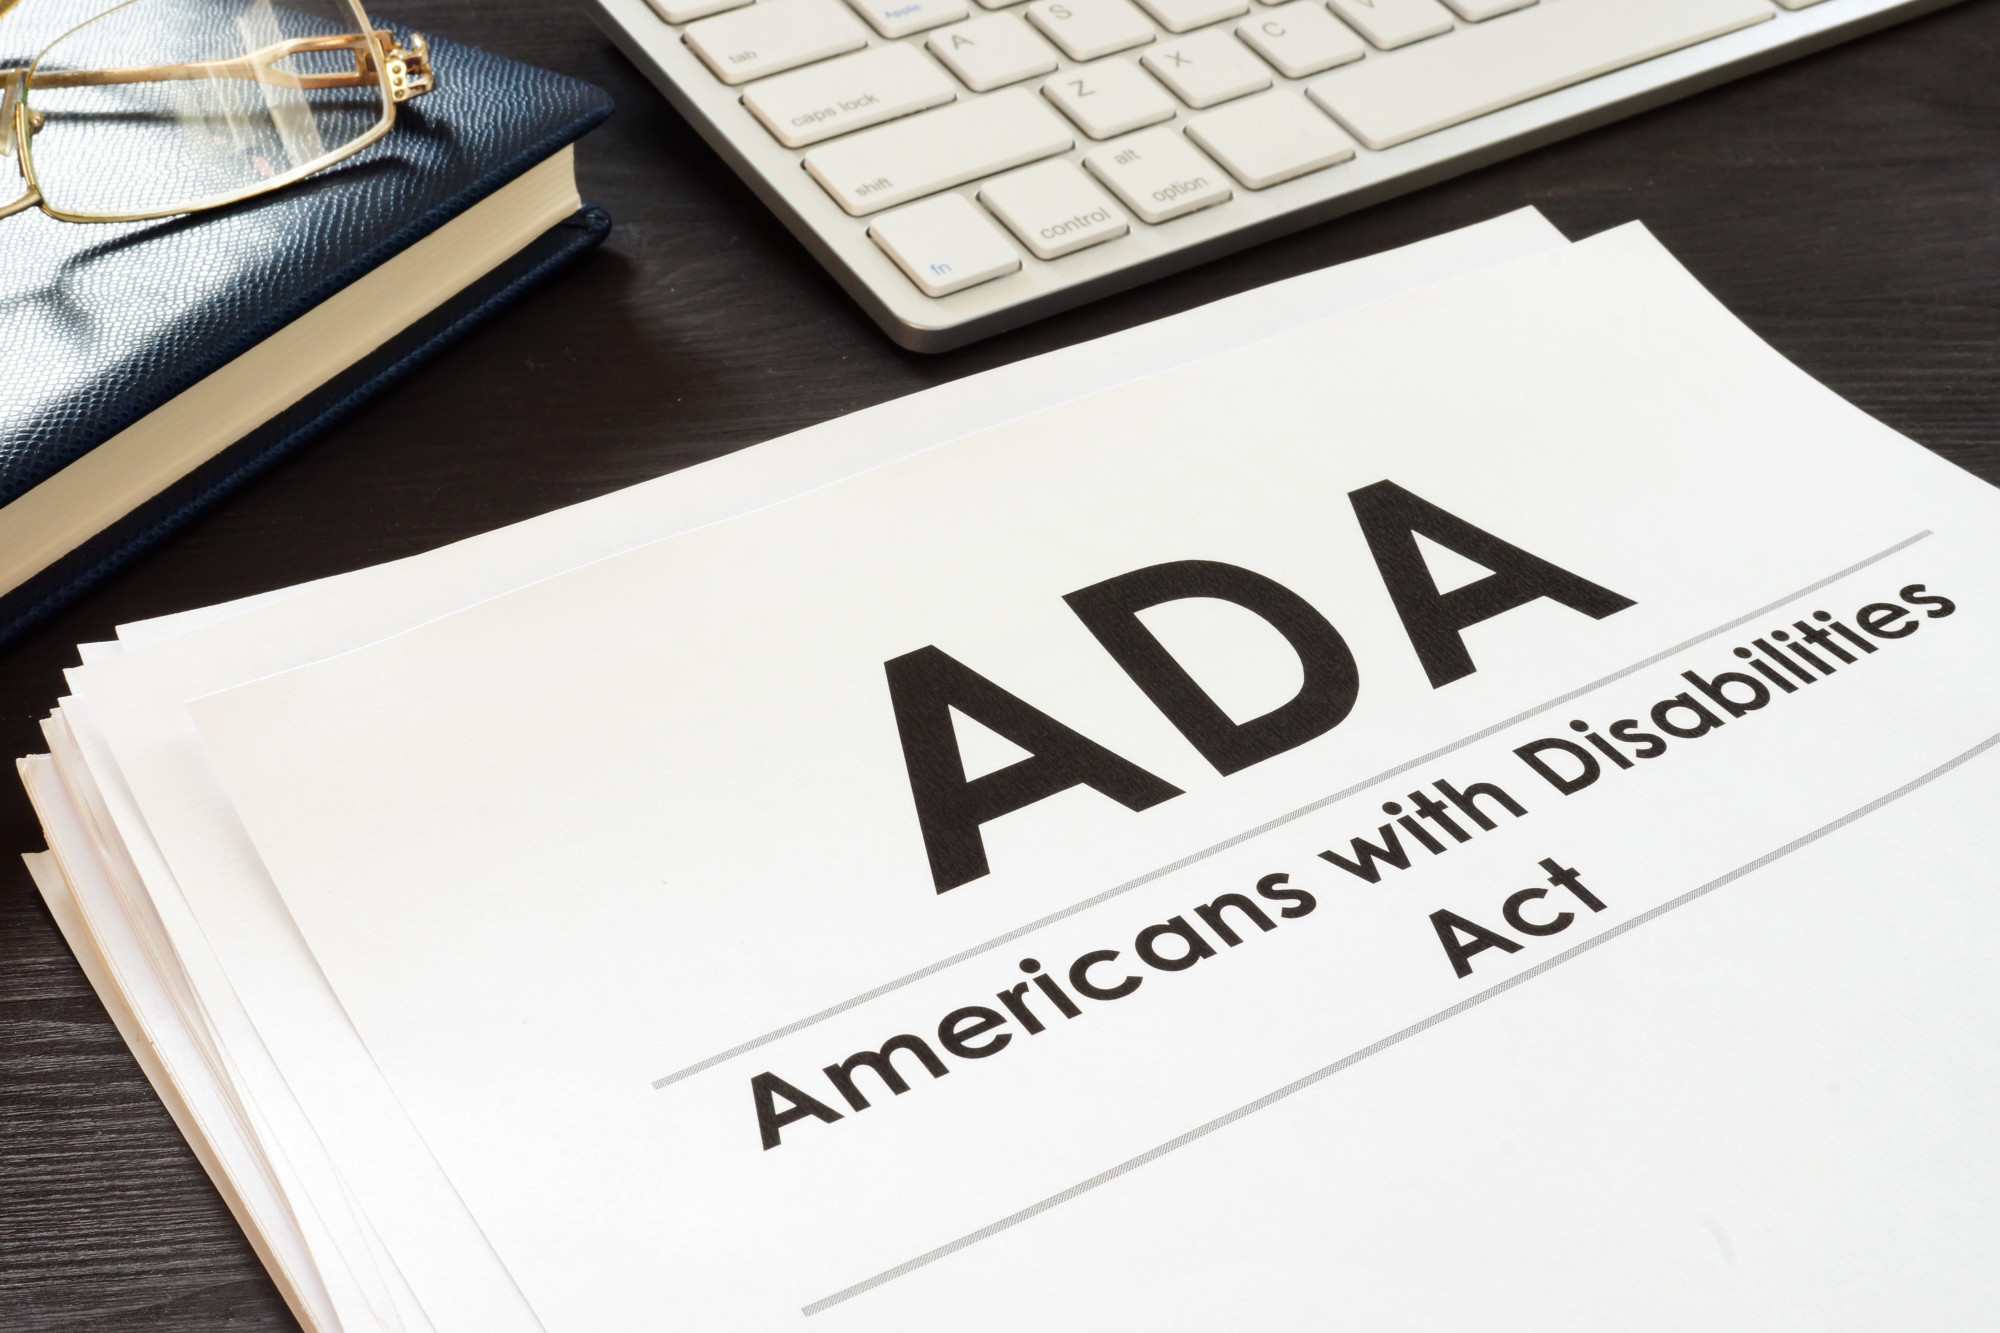 papers with ADA Americans with Disabilities Act on the front